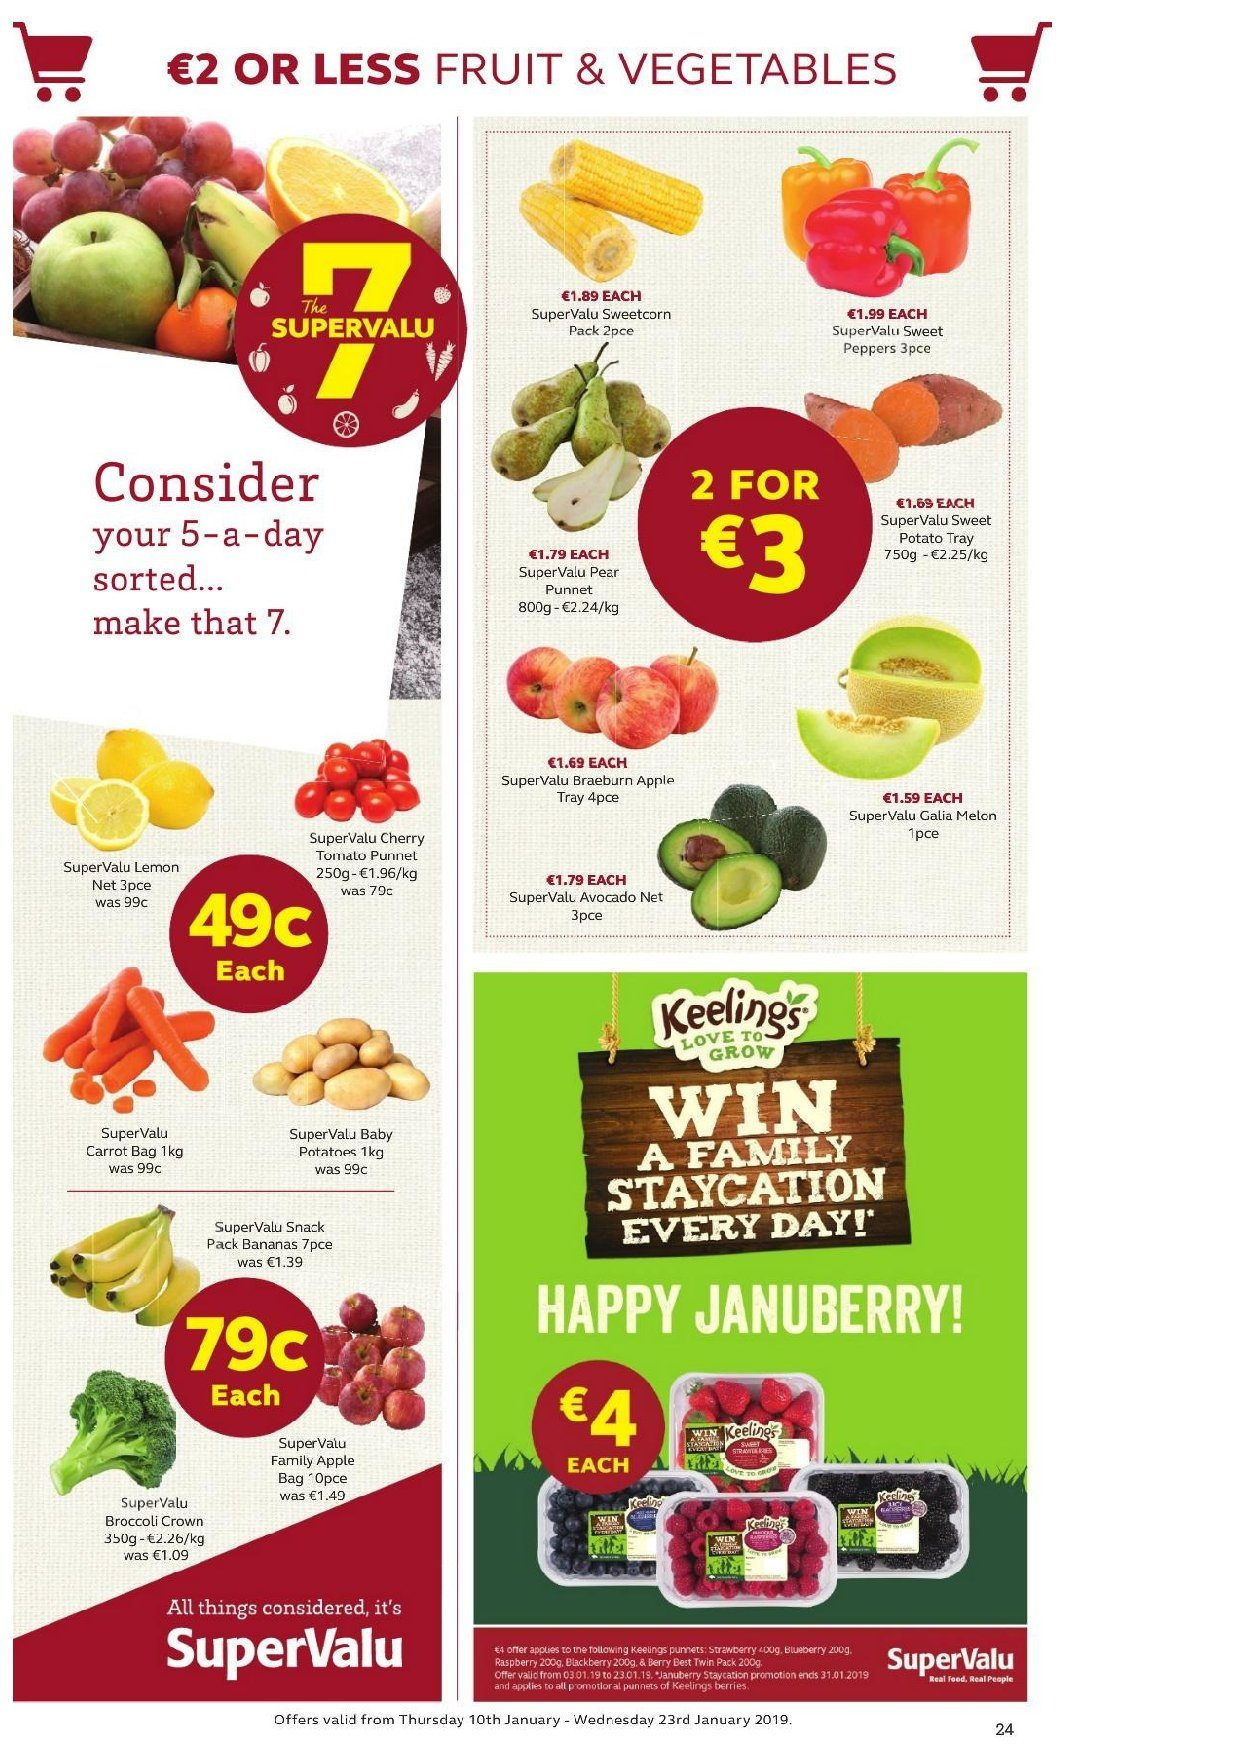 SuperValu offer  - 10.1.2019 - 23.1.2019 - Sales products - broccoli, potatoes, sweet peppers, sweet potatoe, sweetcorn, peppers, avocado, bananas, pears. Page 47.